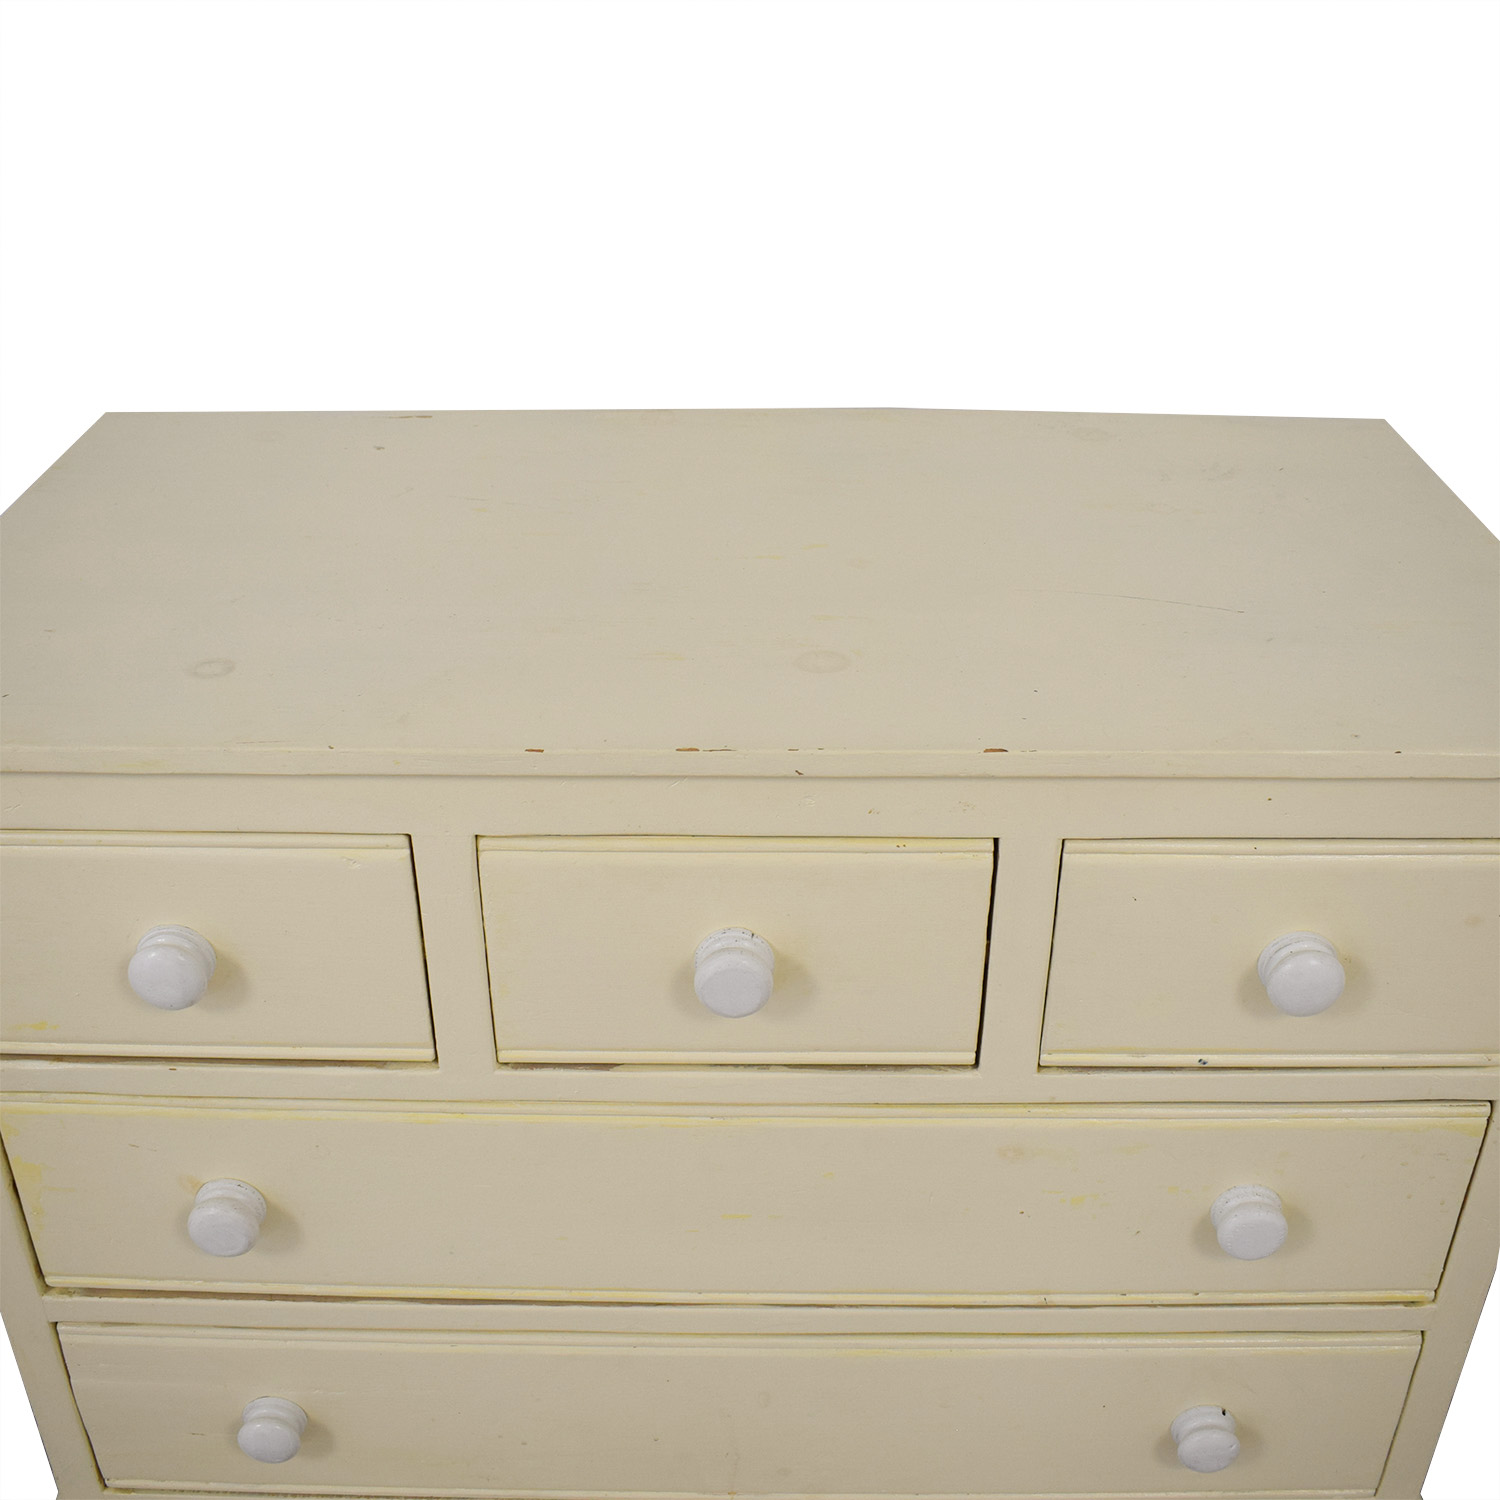 Pottery Barn Pottery Barn Five Drawer Dresser with Extendable Table coupon